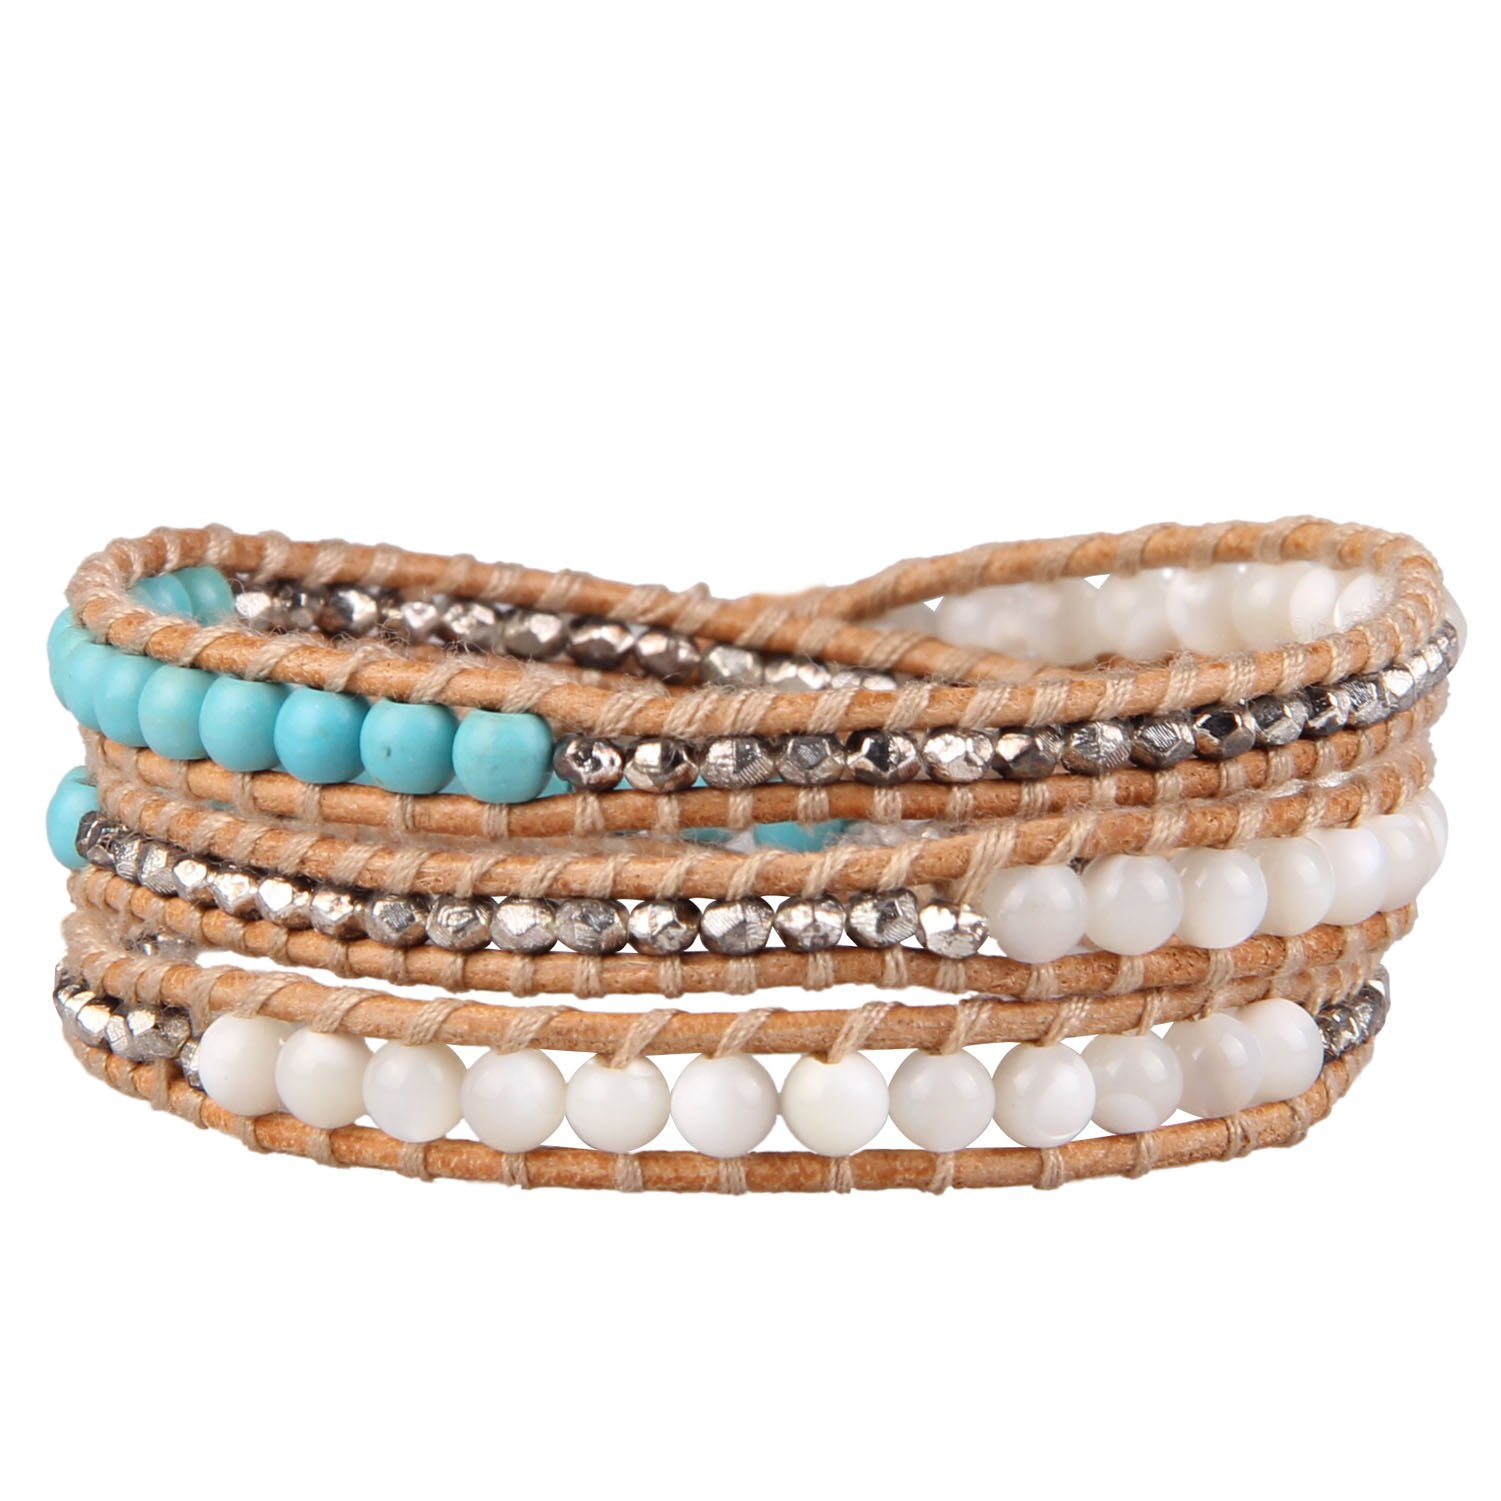 KELITCH Turquoise Mother of Pearl Silver Mix Beaded 3 Wrap Bracelet Handmade New Cuff Jewelry